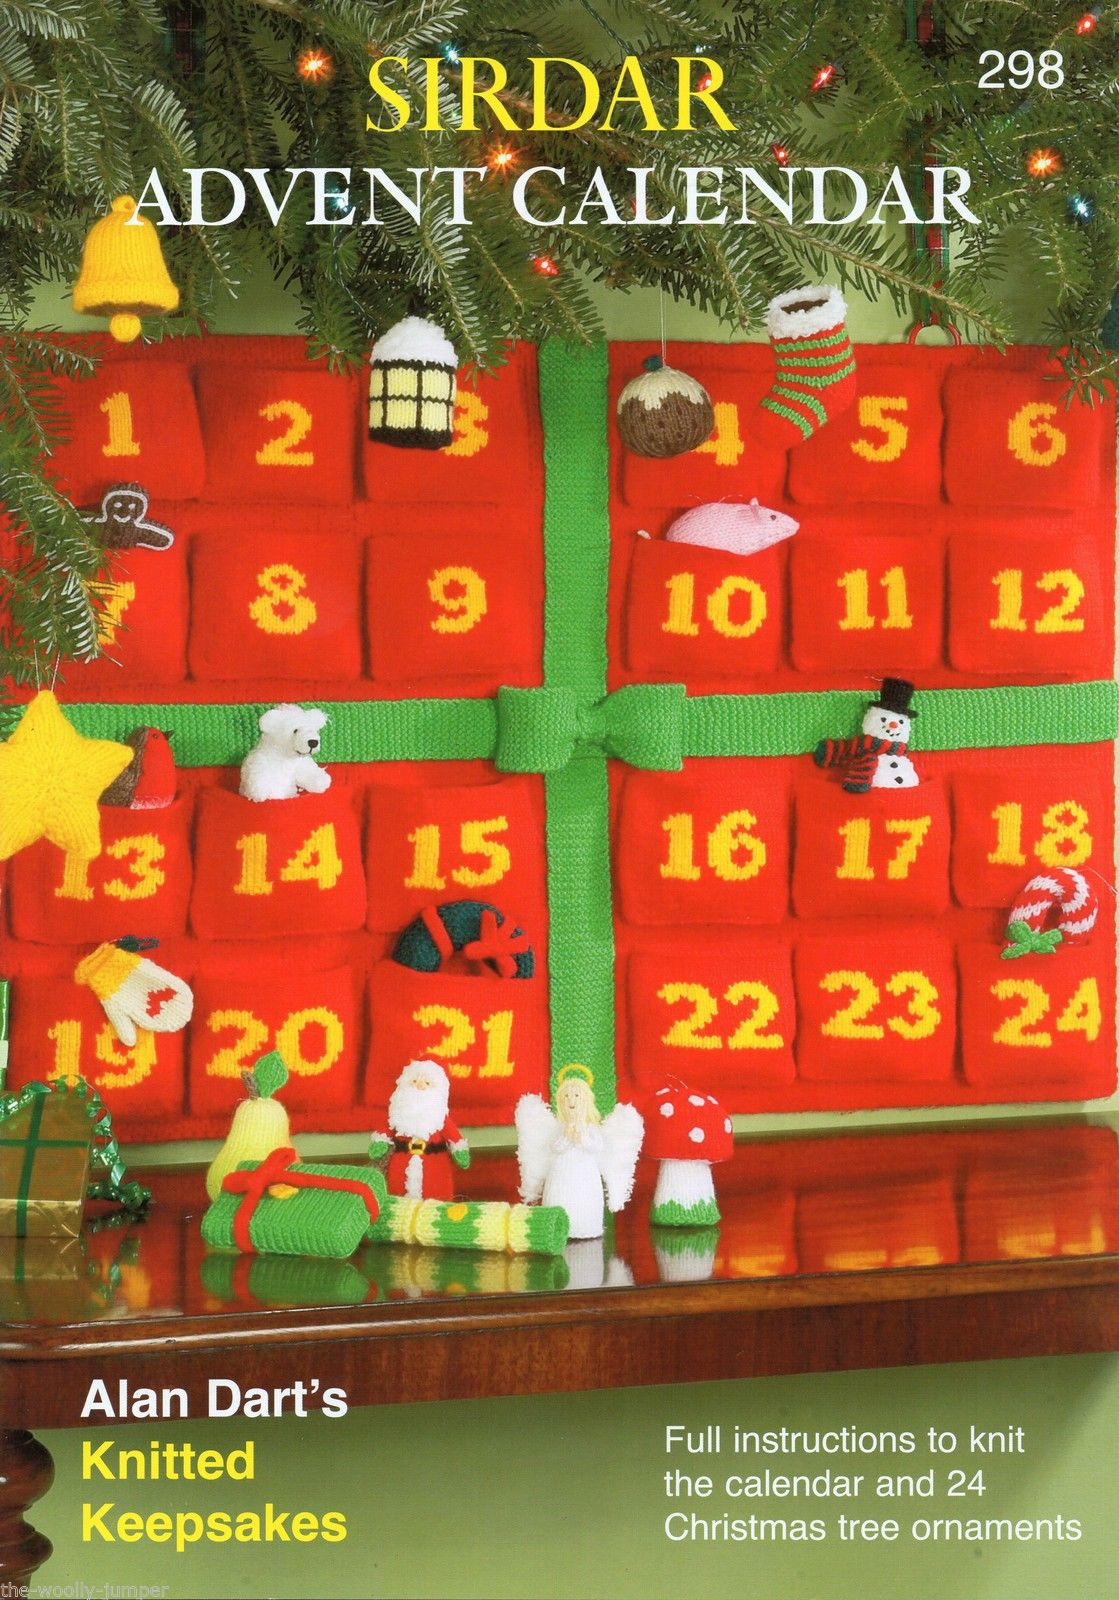 Knitting Pattern Christmas Advent Calendar : 298 - SIRDAR ADVENT CALENDAR KNITTING PATTERN BOOKLET BY ALAN DART